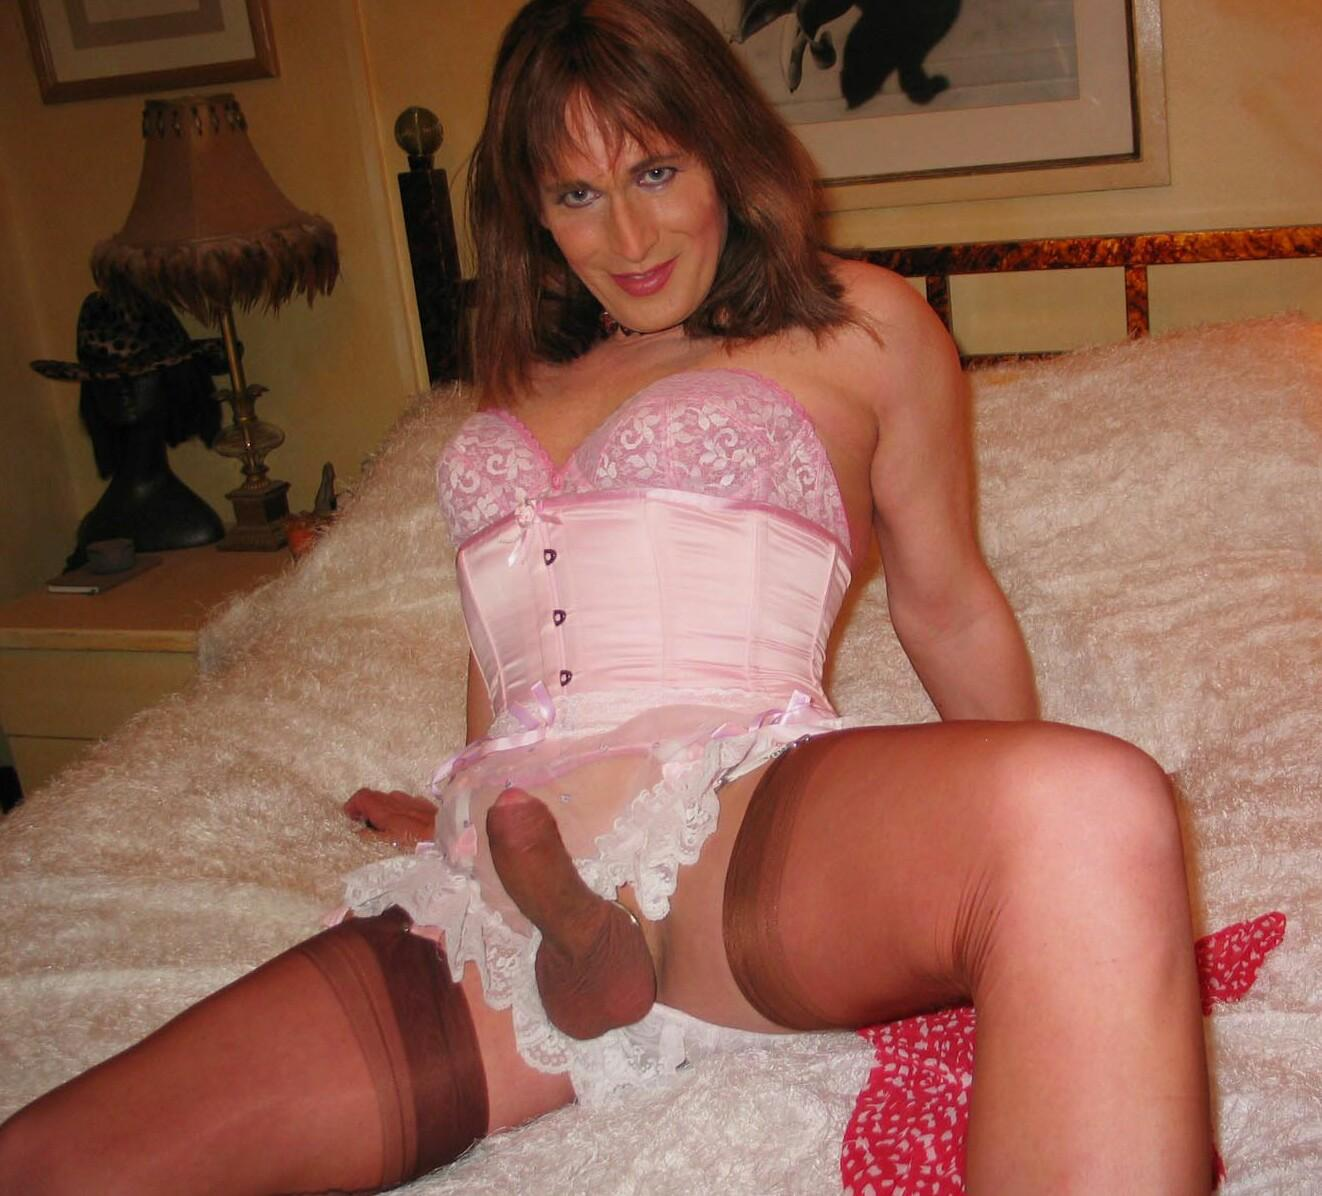 transvestite bras panties blowjob jpg 1200x900